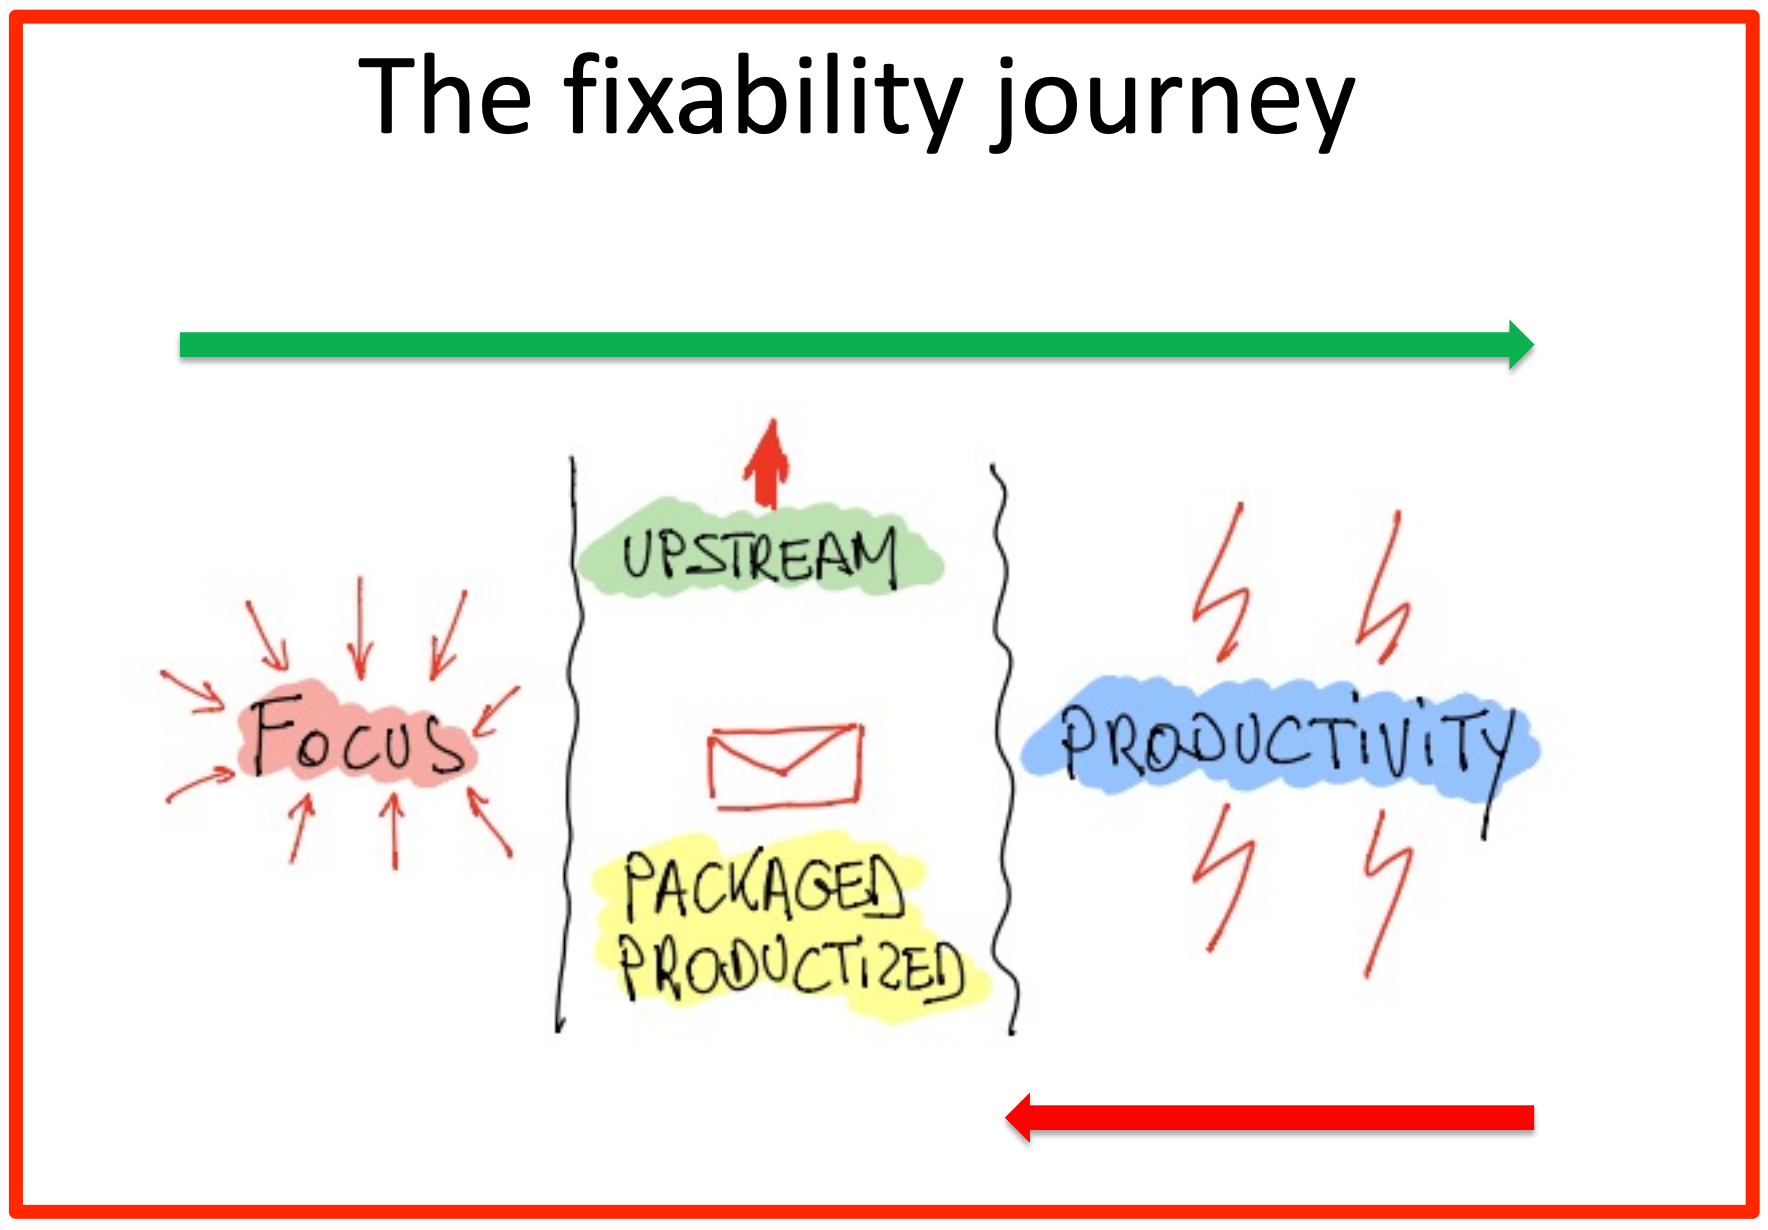 The fixability journey